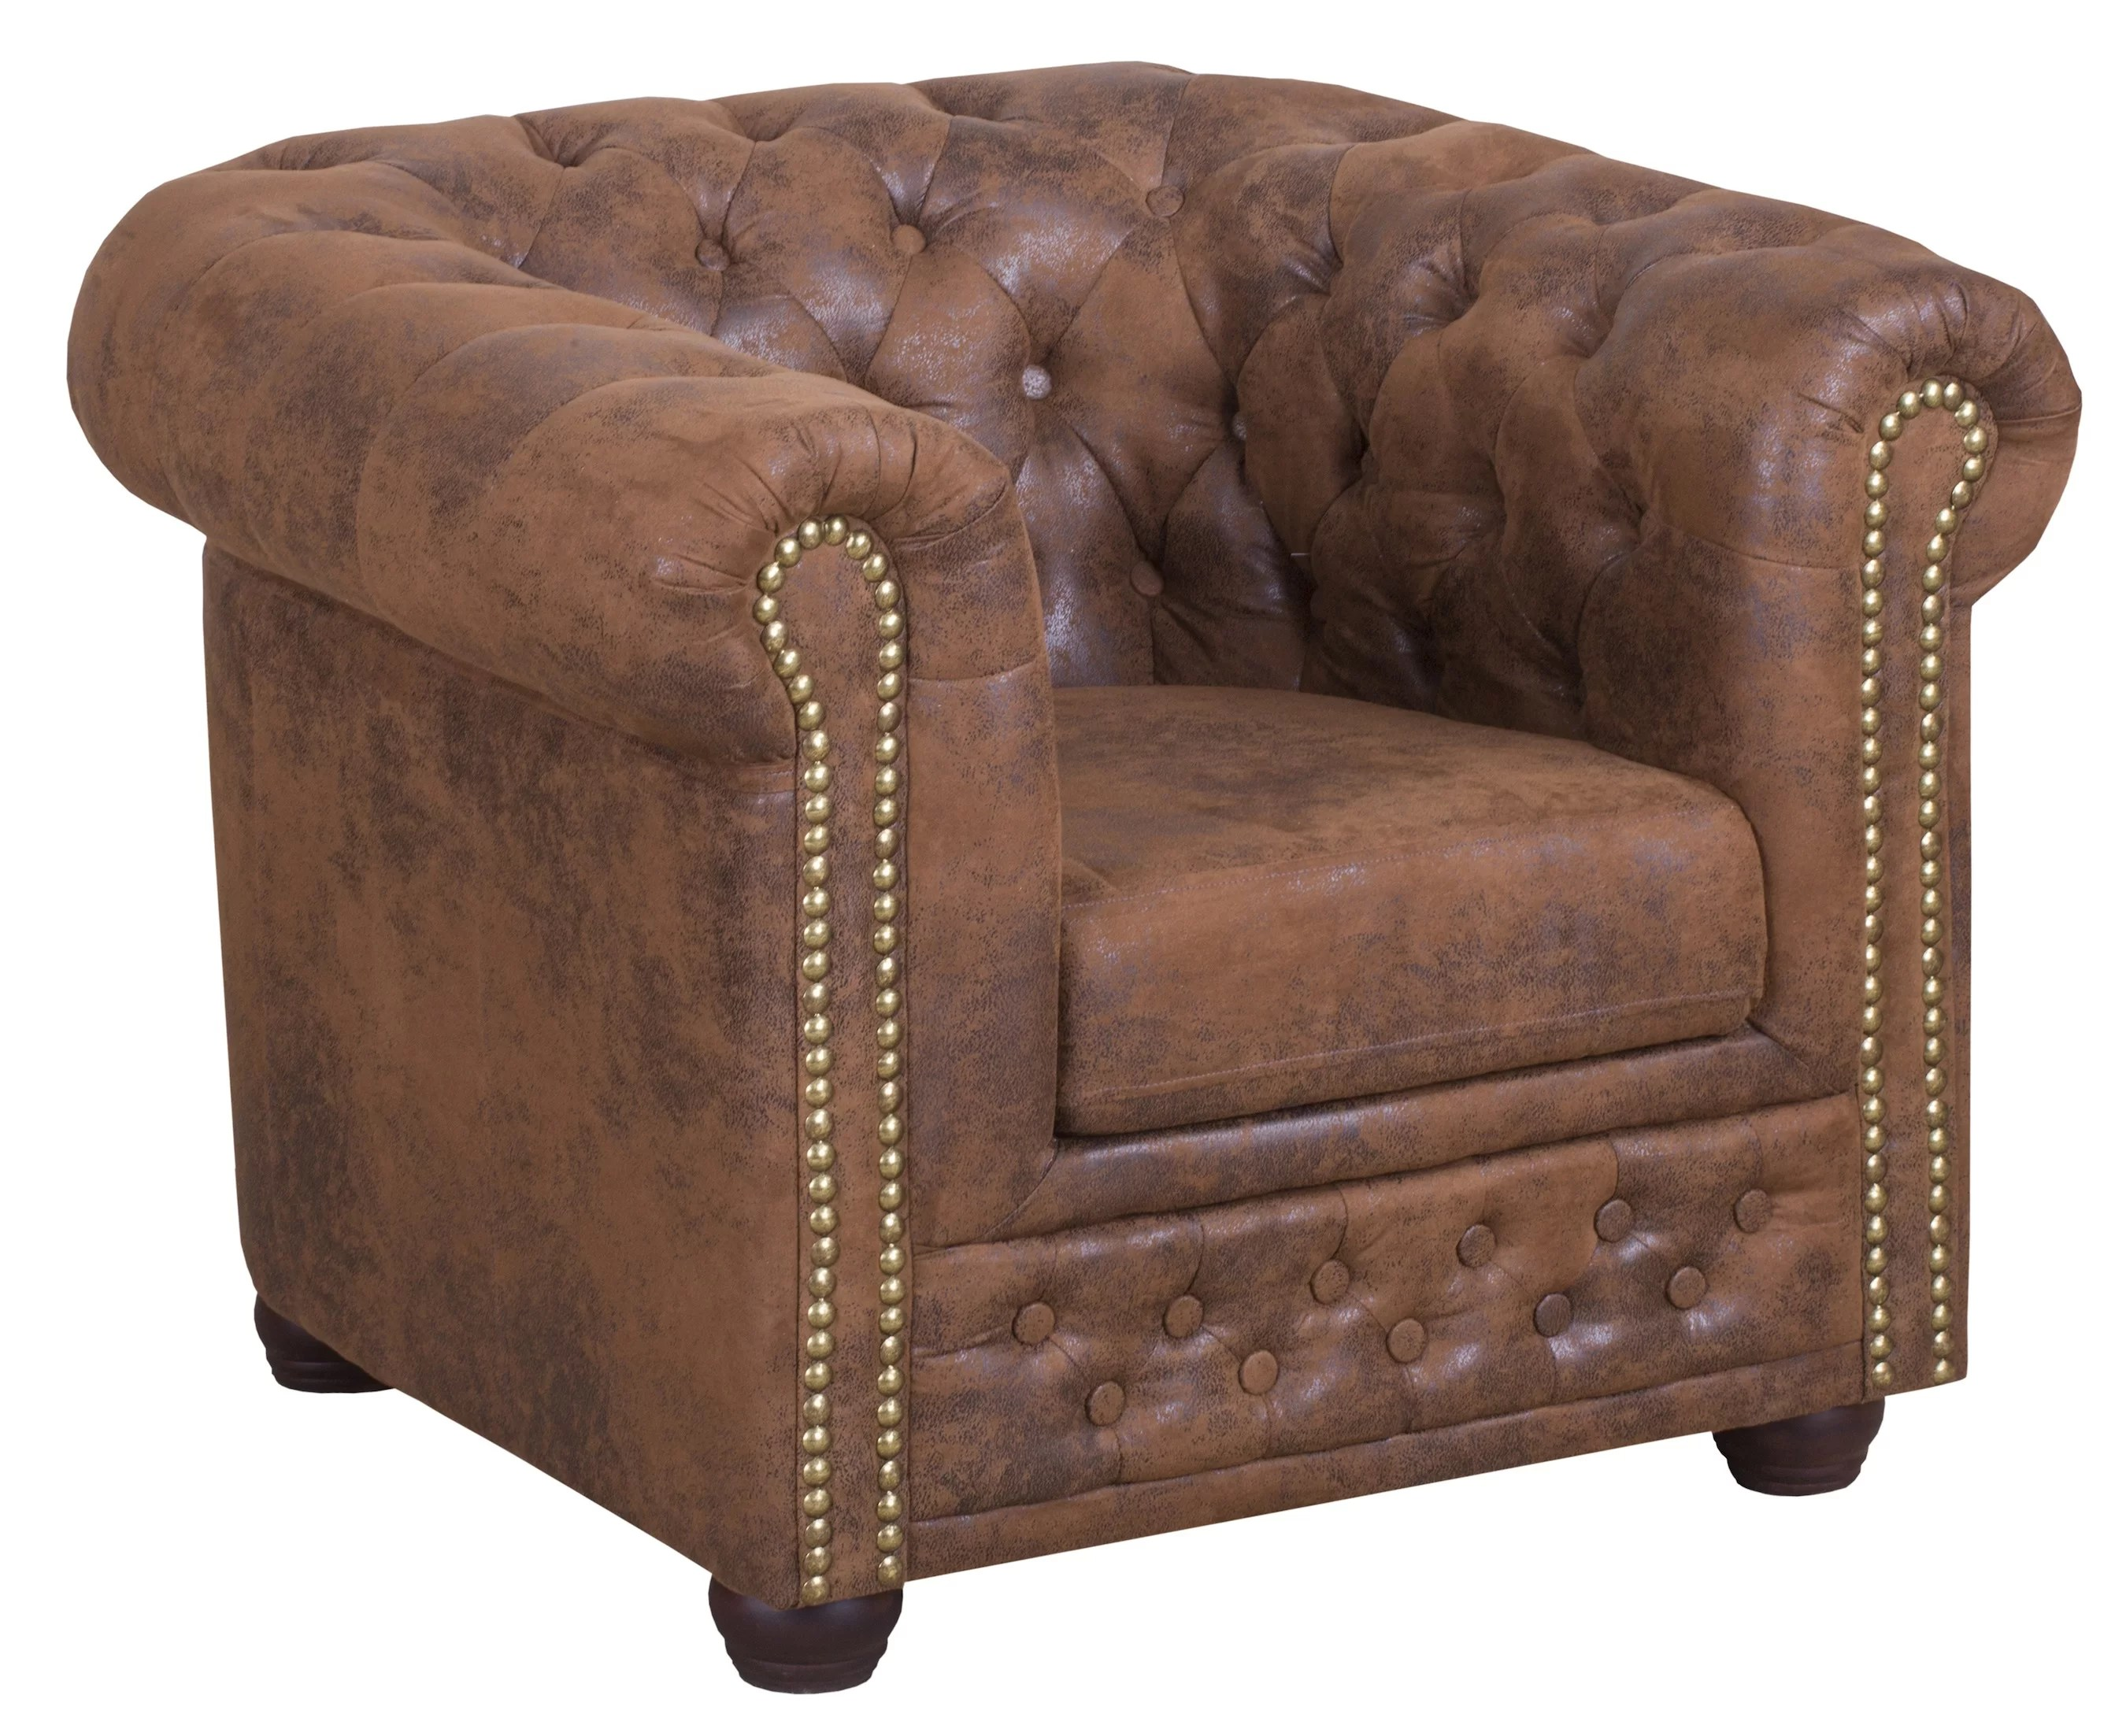 Sessel Chesterfield Chesterfield Sessel Abtao